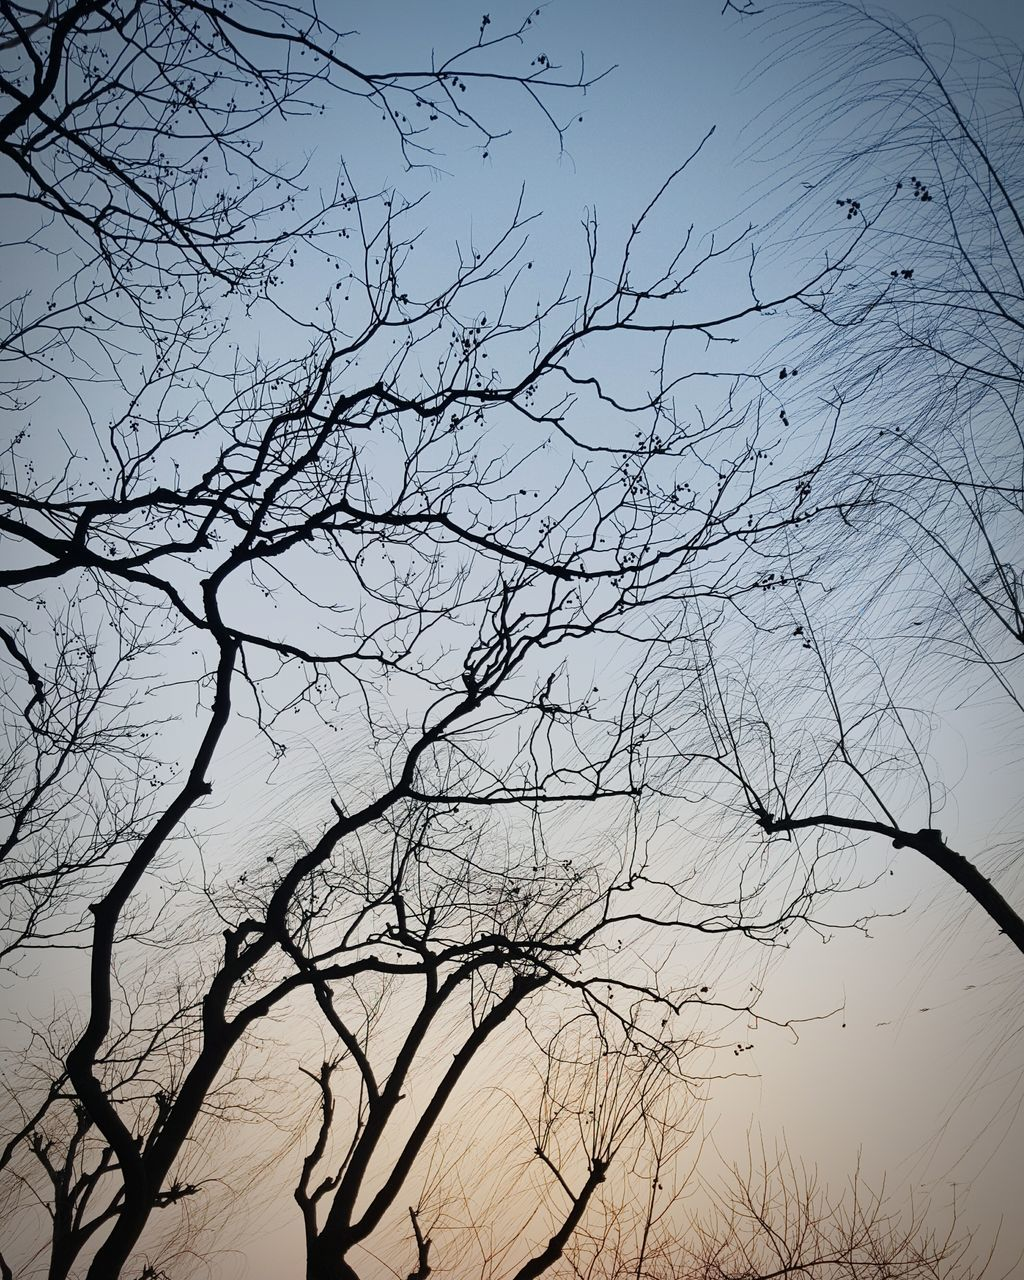 bare tree, branch, nature, beauty in nature, no people, silhouette, low angle view, outdoors, tranquility, tree, sky, scenics, day, clear sky, bird